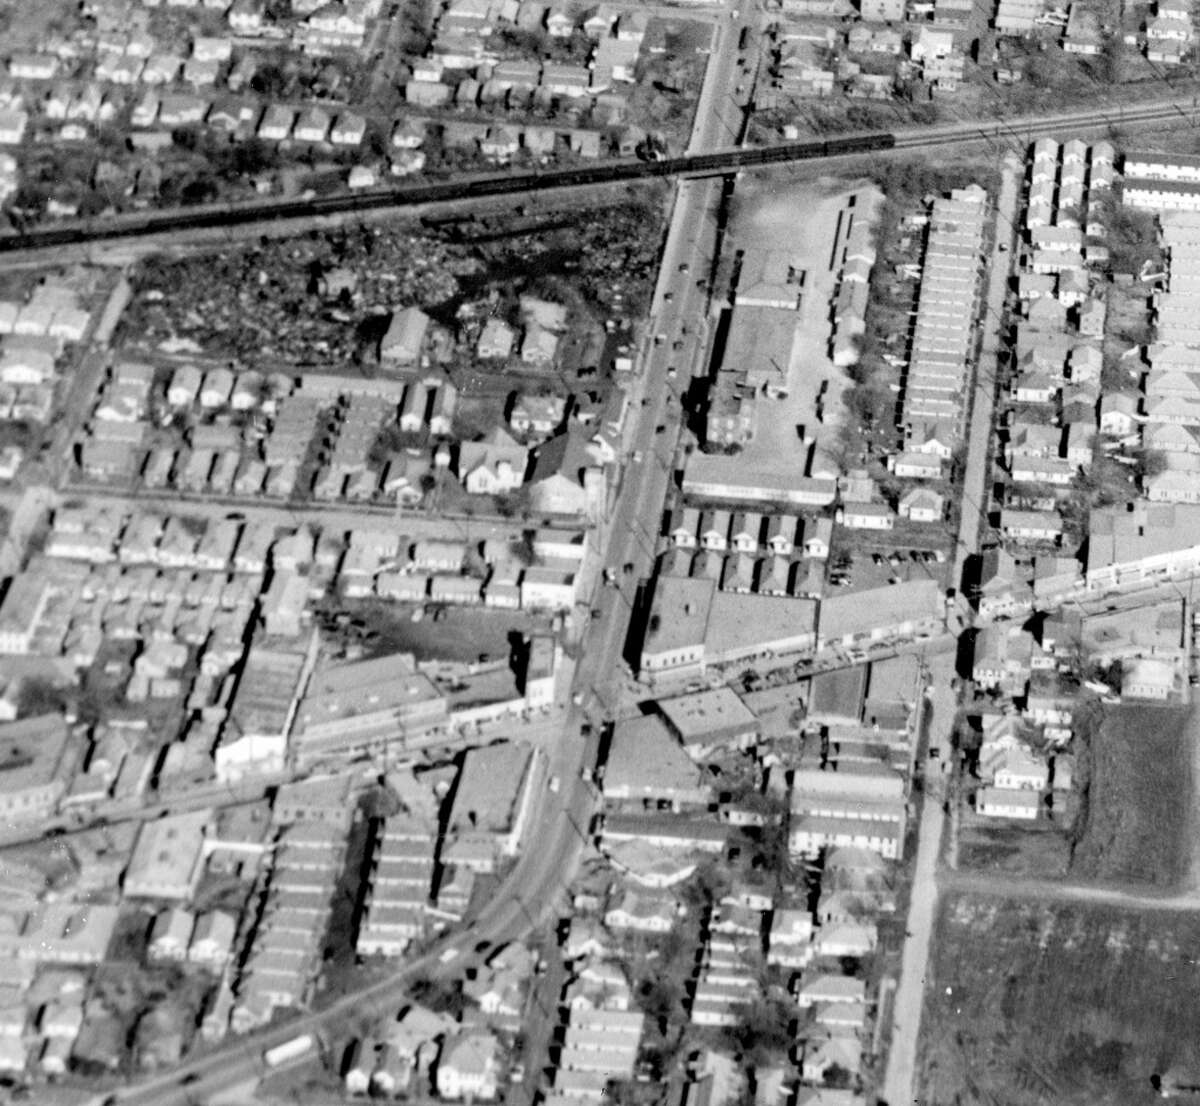 Jensen at Lyons. Just of out view to the lower left is Hill Street and Lyons.